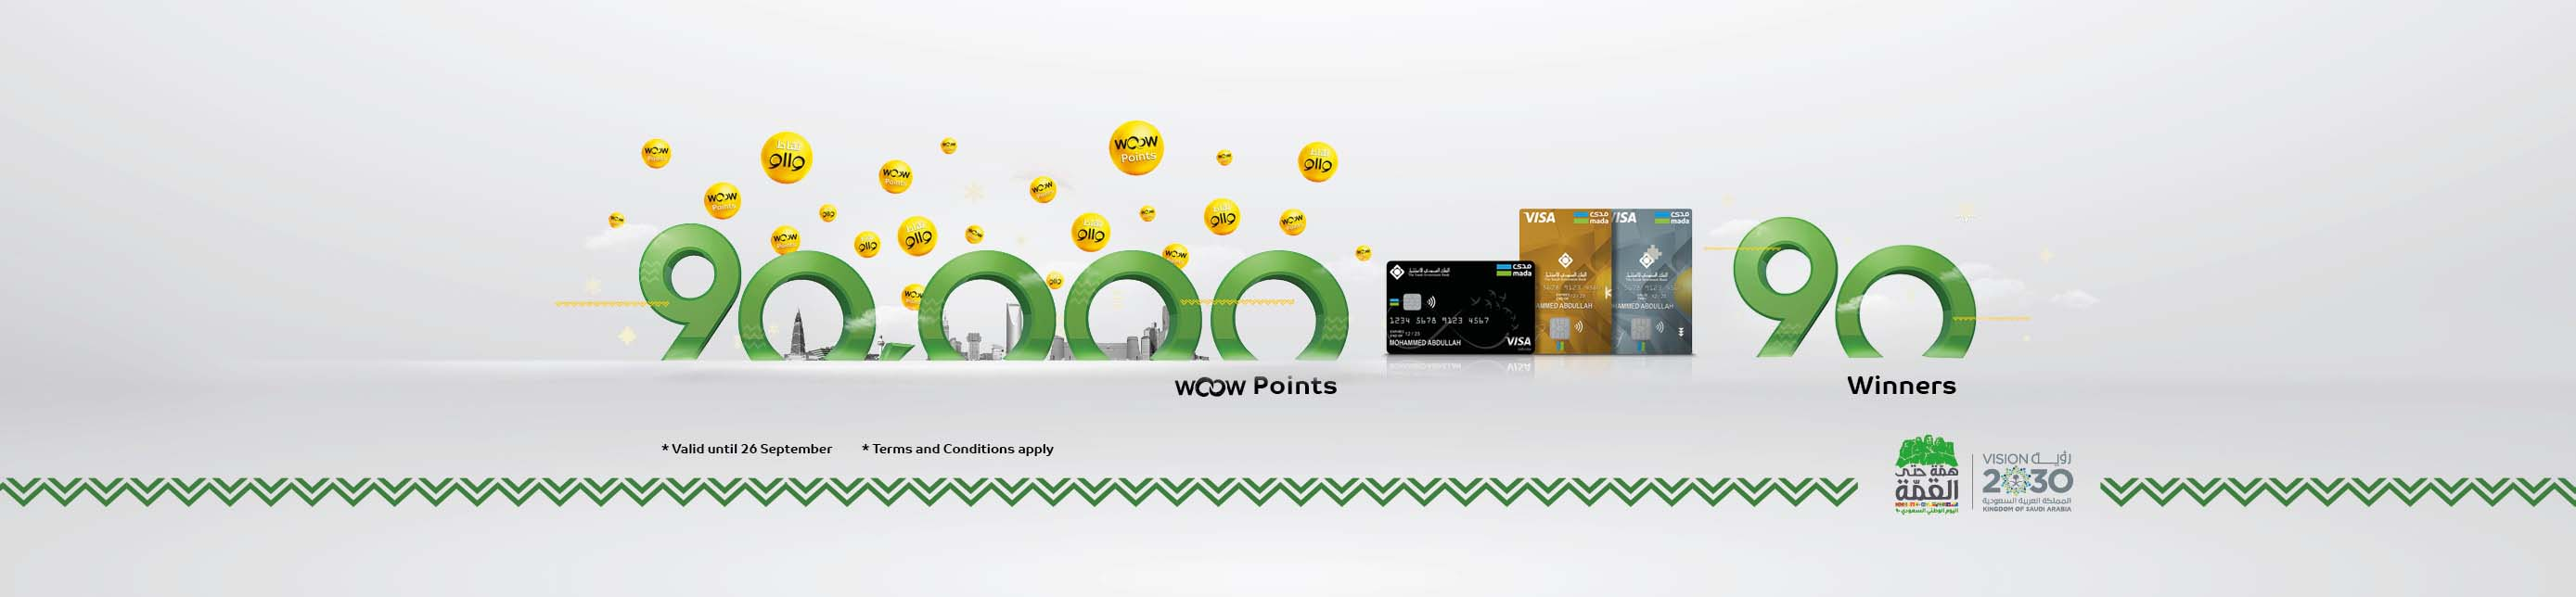 90,000 WOOW POINTS FOR 90 WINNERS